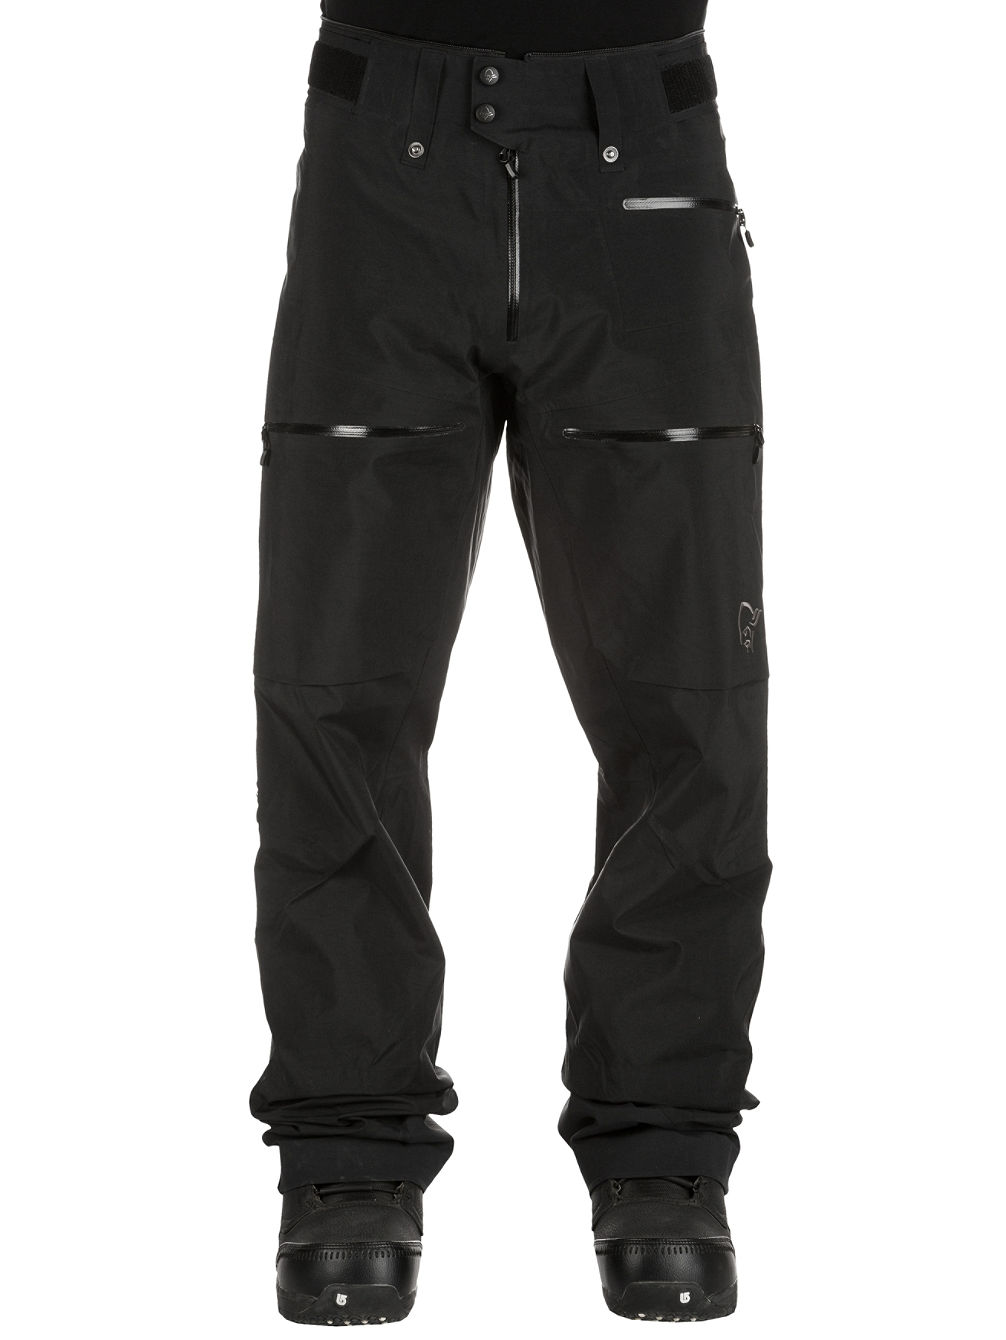 Lofoten Gore-Tex Pro Light Pants